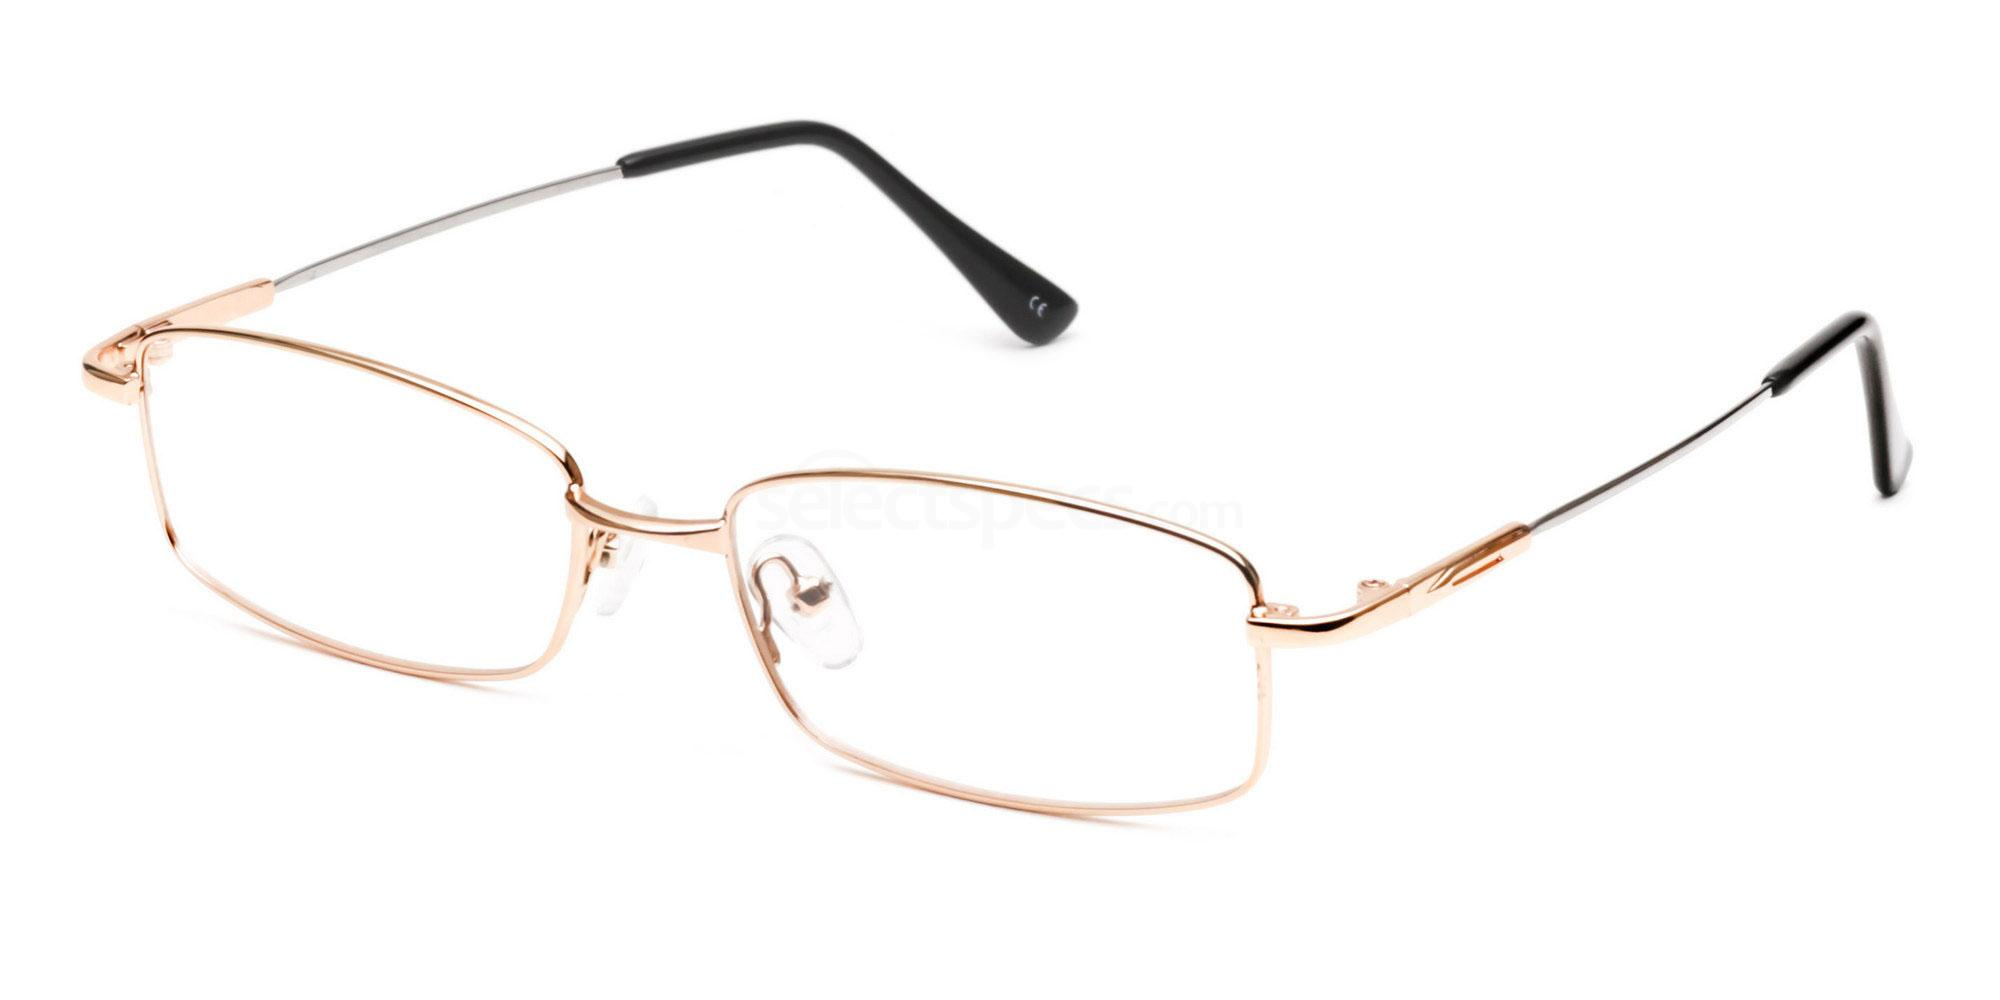 Savannah 3215 gold metal rim prescription glasses